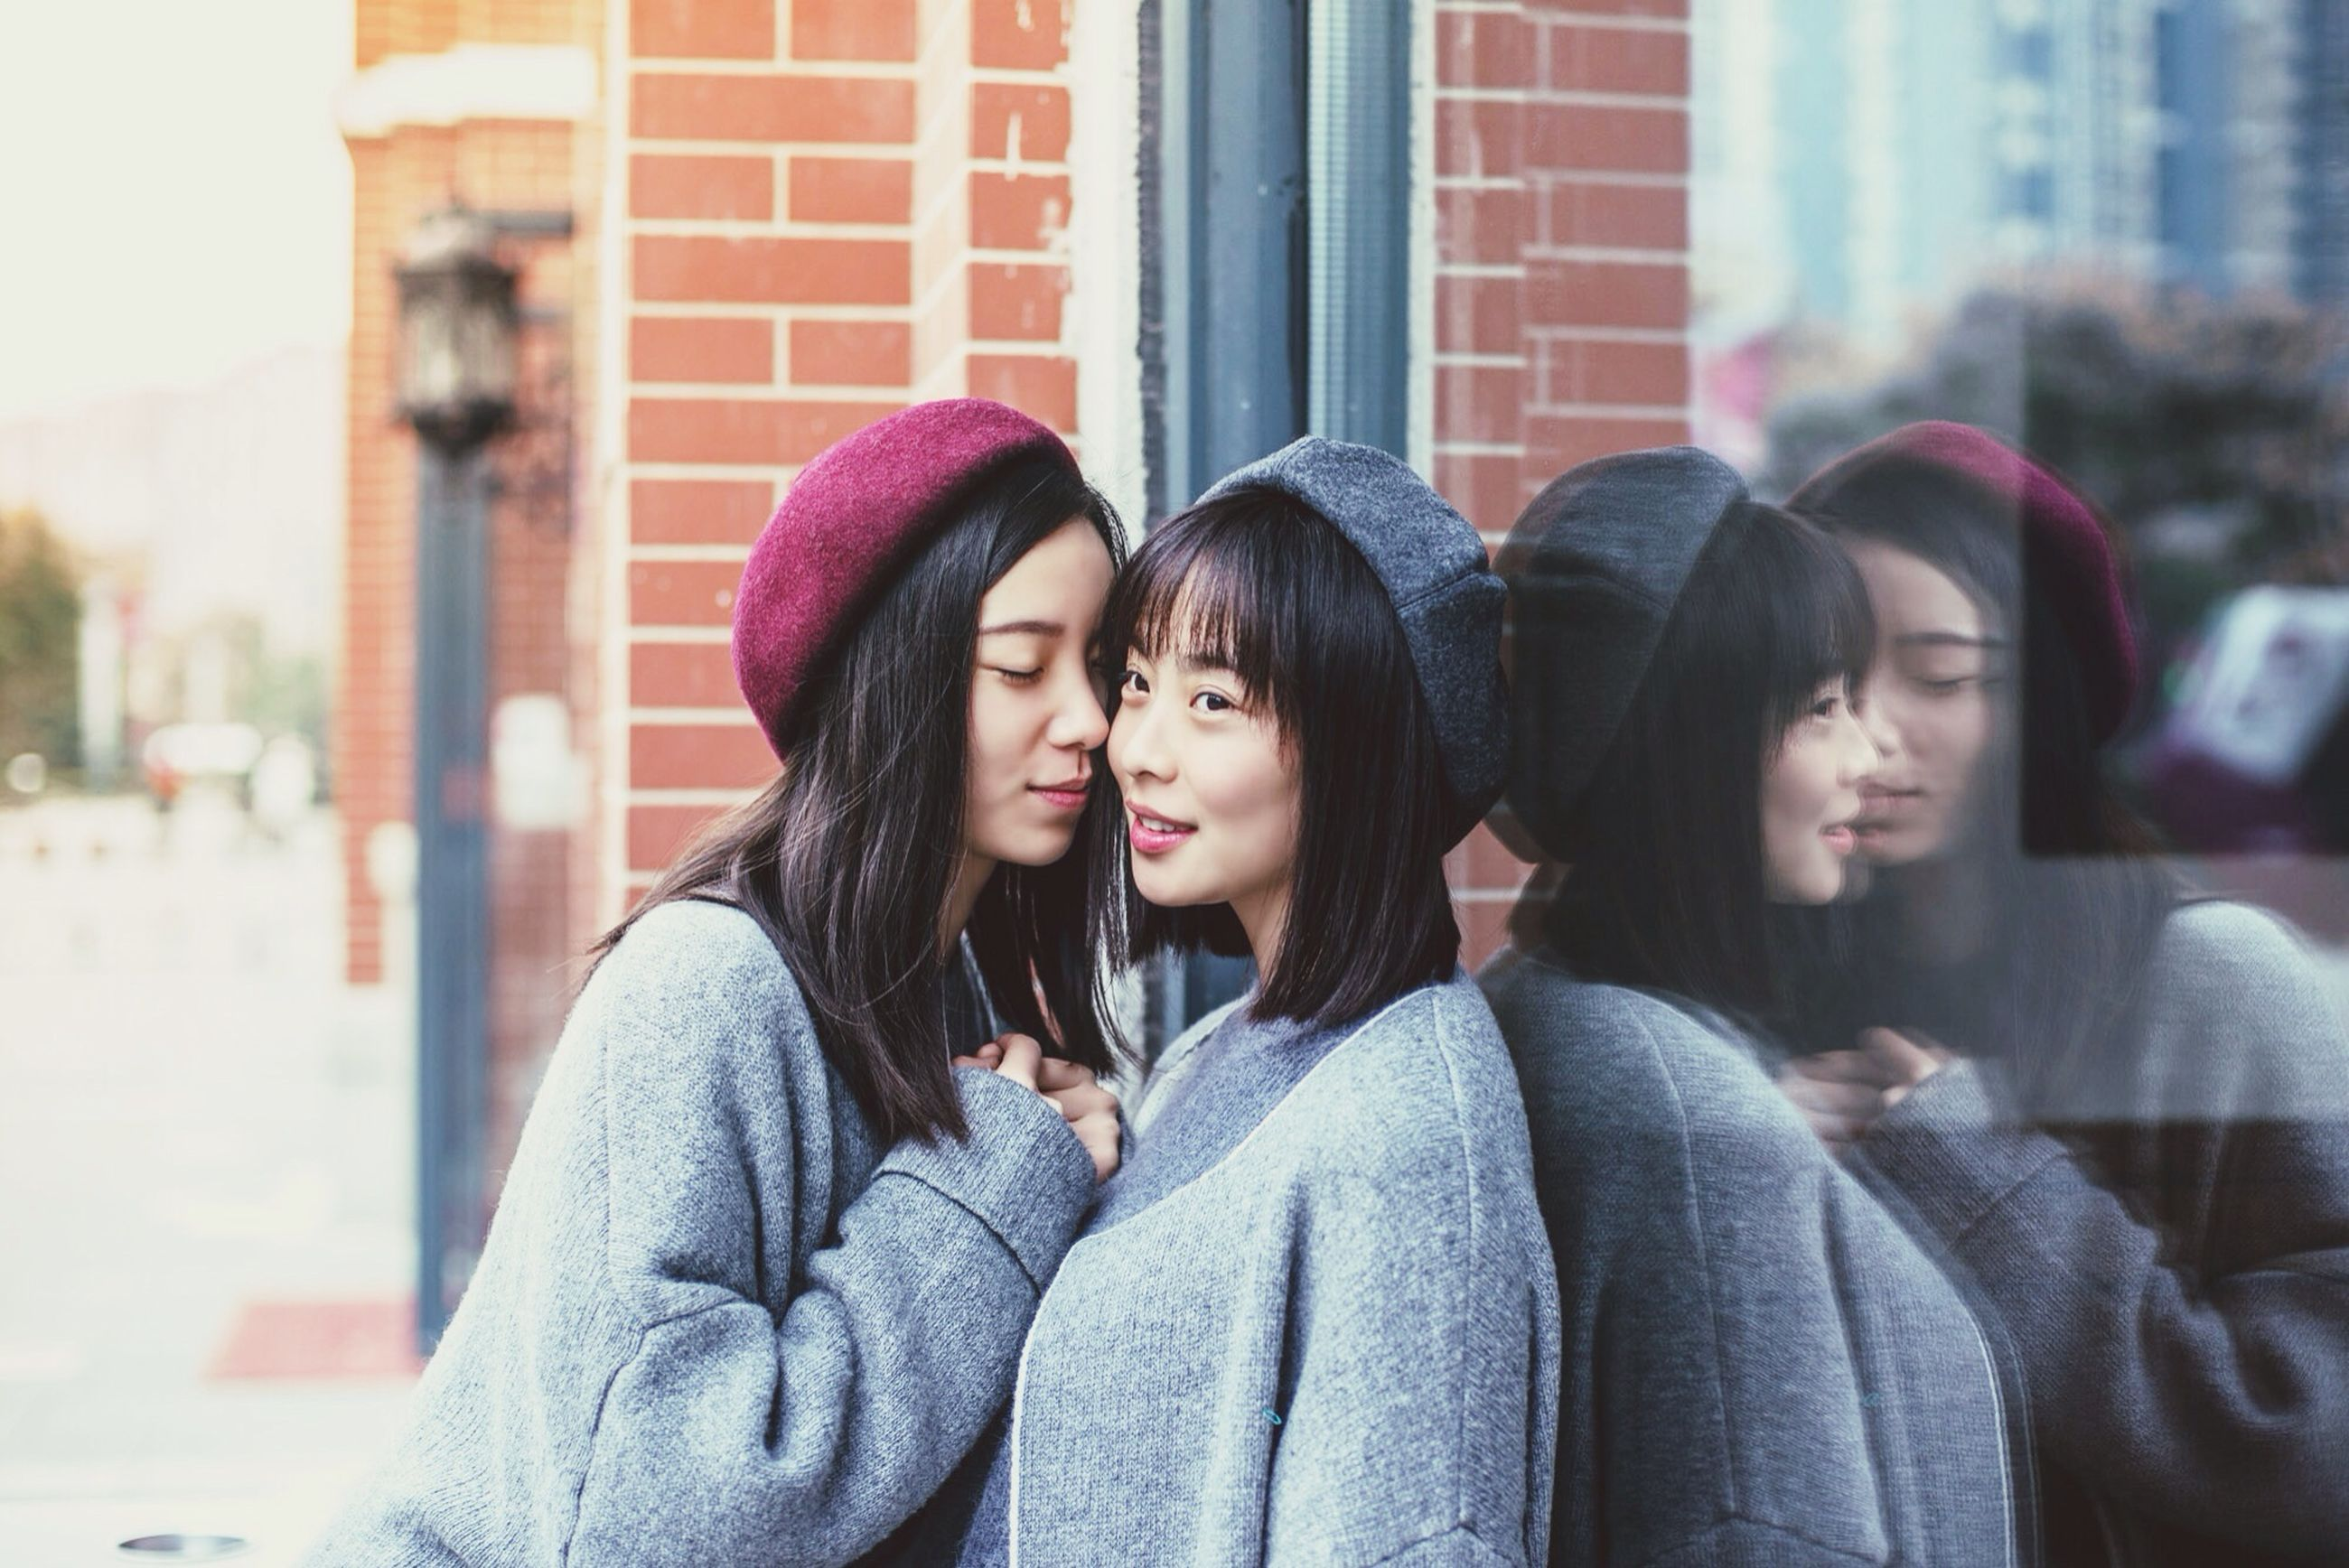 lifestyles, waist up, leisure activity, casual clothing, young adult, person, focus on foreground, headshot, togetherness, warm clothing, front view, bonding, young women, smiling, standing, building exterior